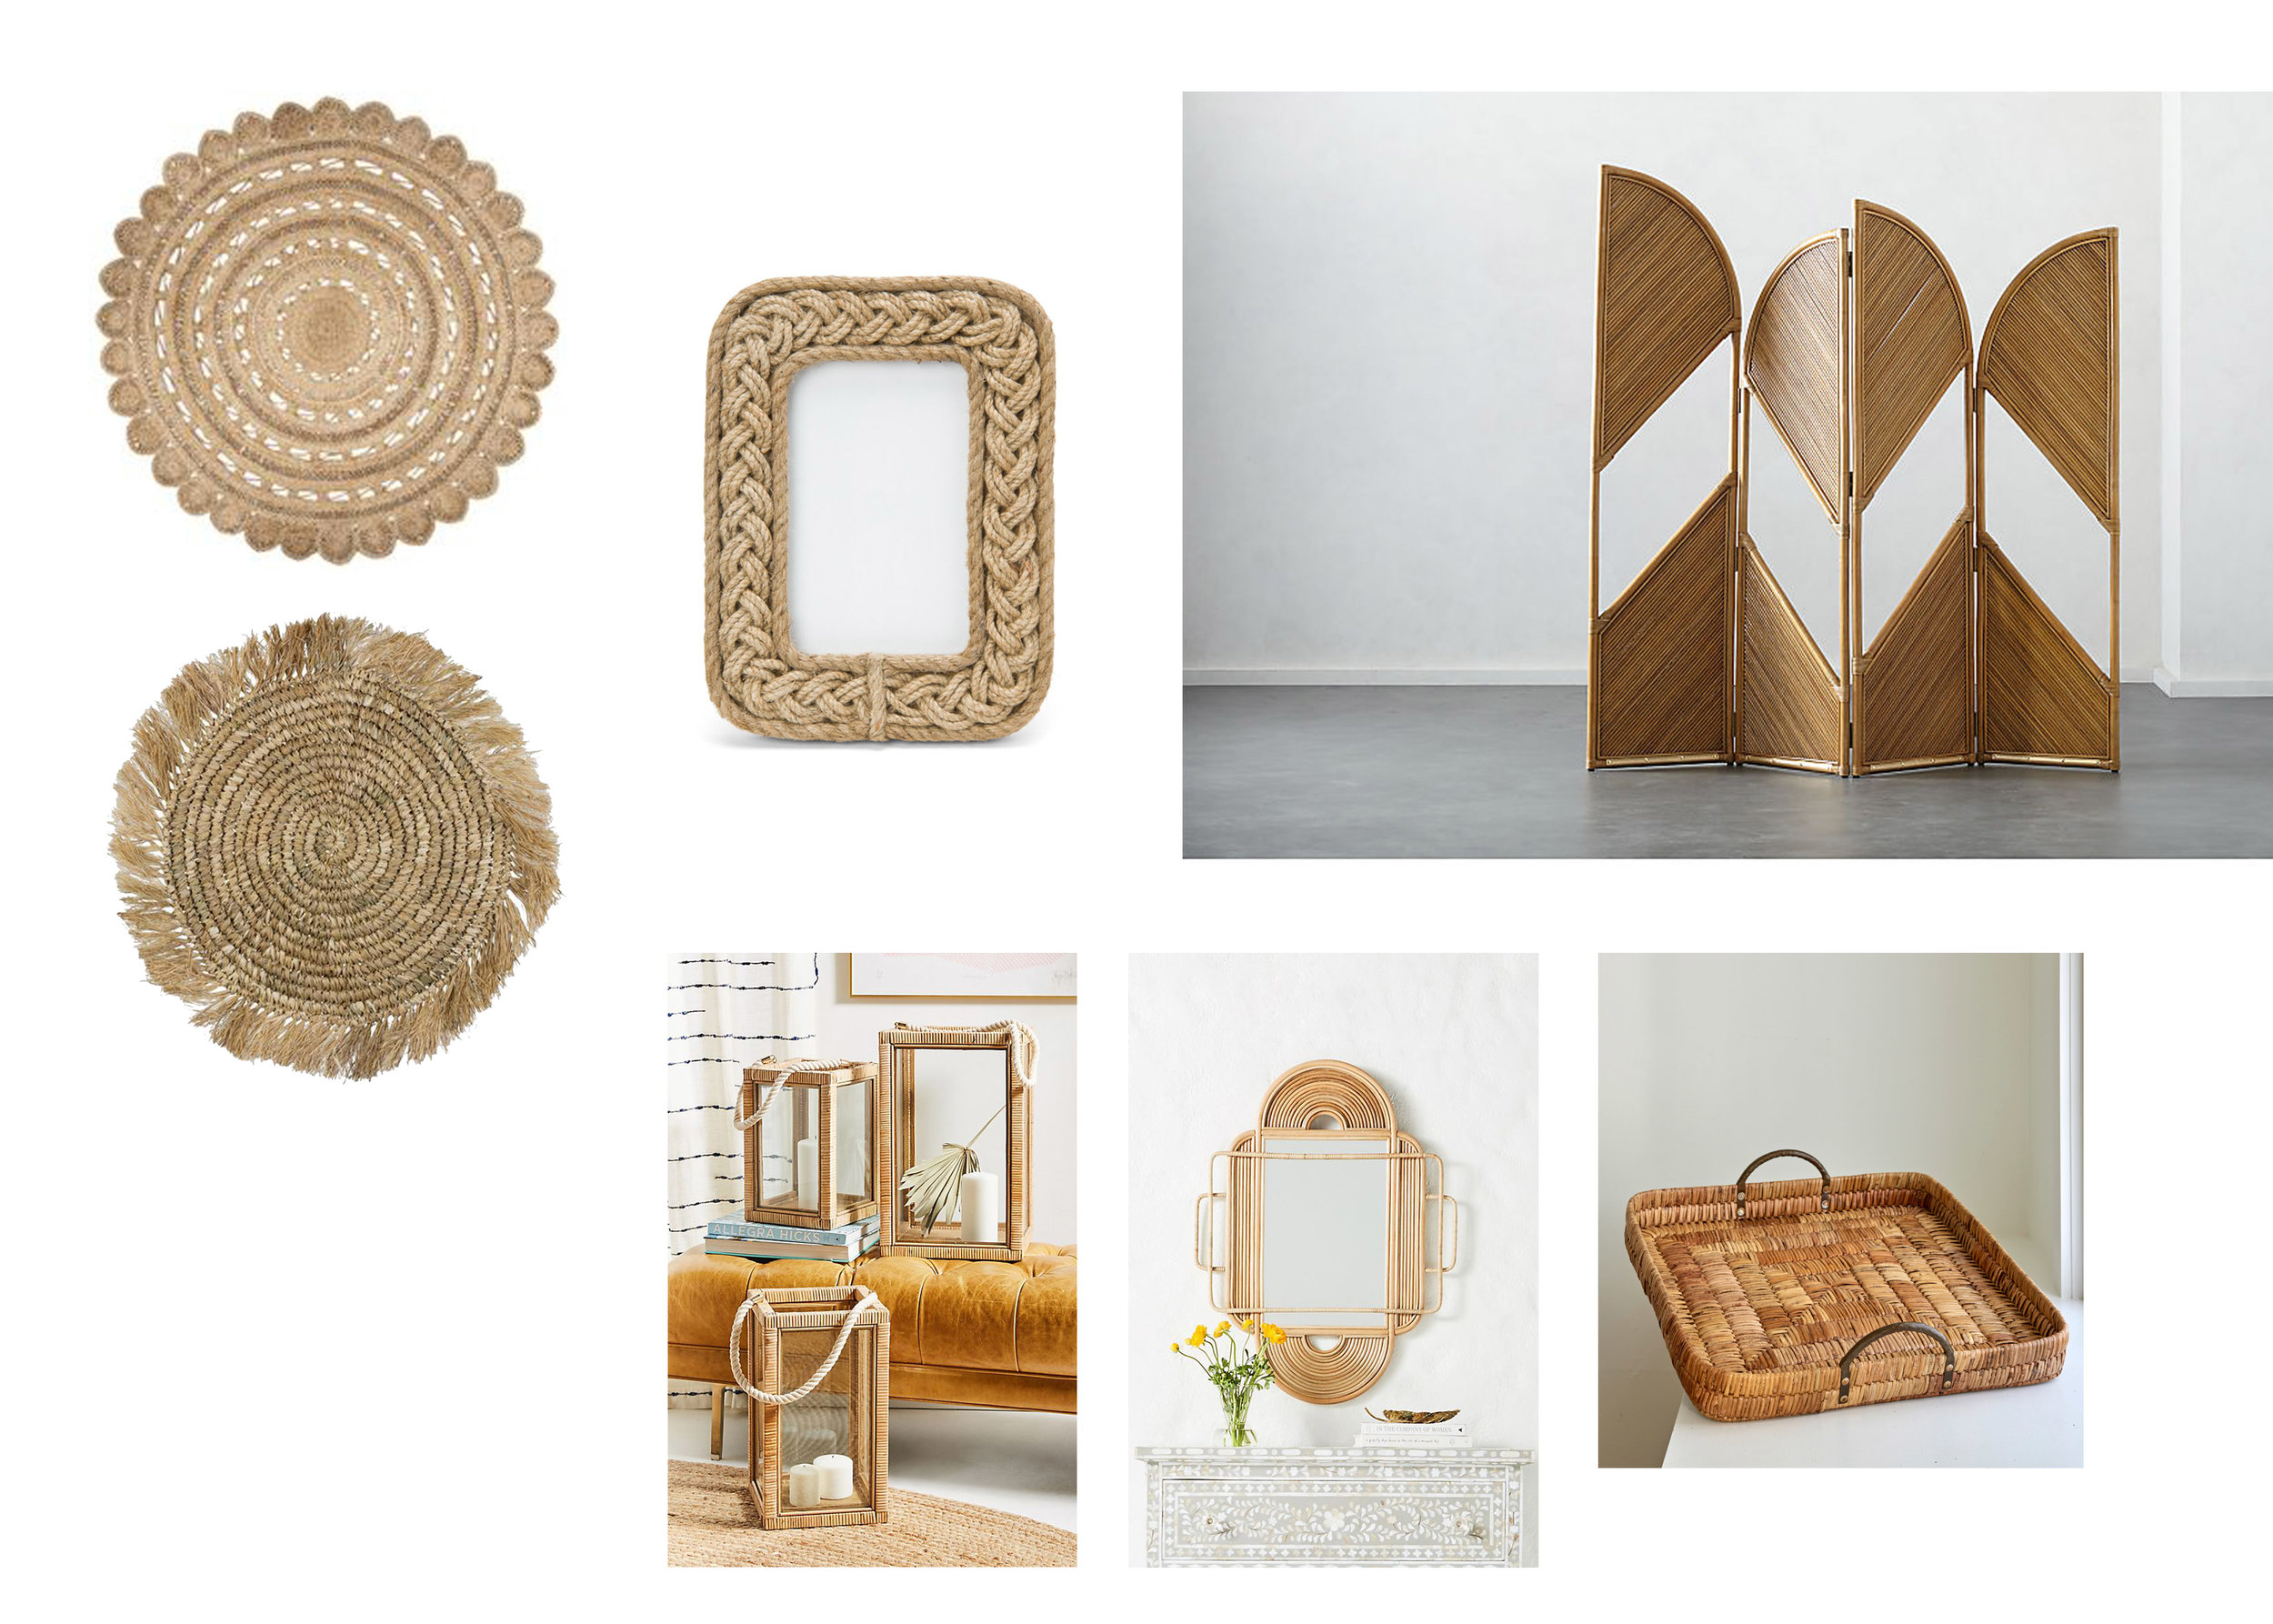 LANTERN  |  RATTAN MIRROR  |  ROOM DIVIDER  |  JUTE RUG  |  PLACEMAT  |  FRAME  |  TRAY